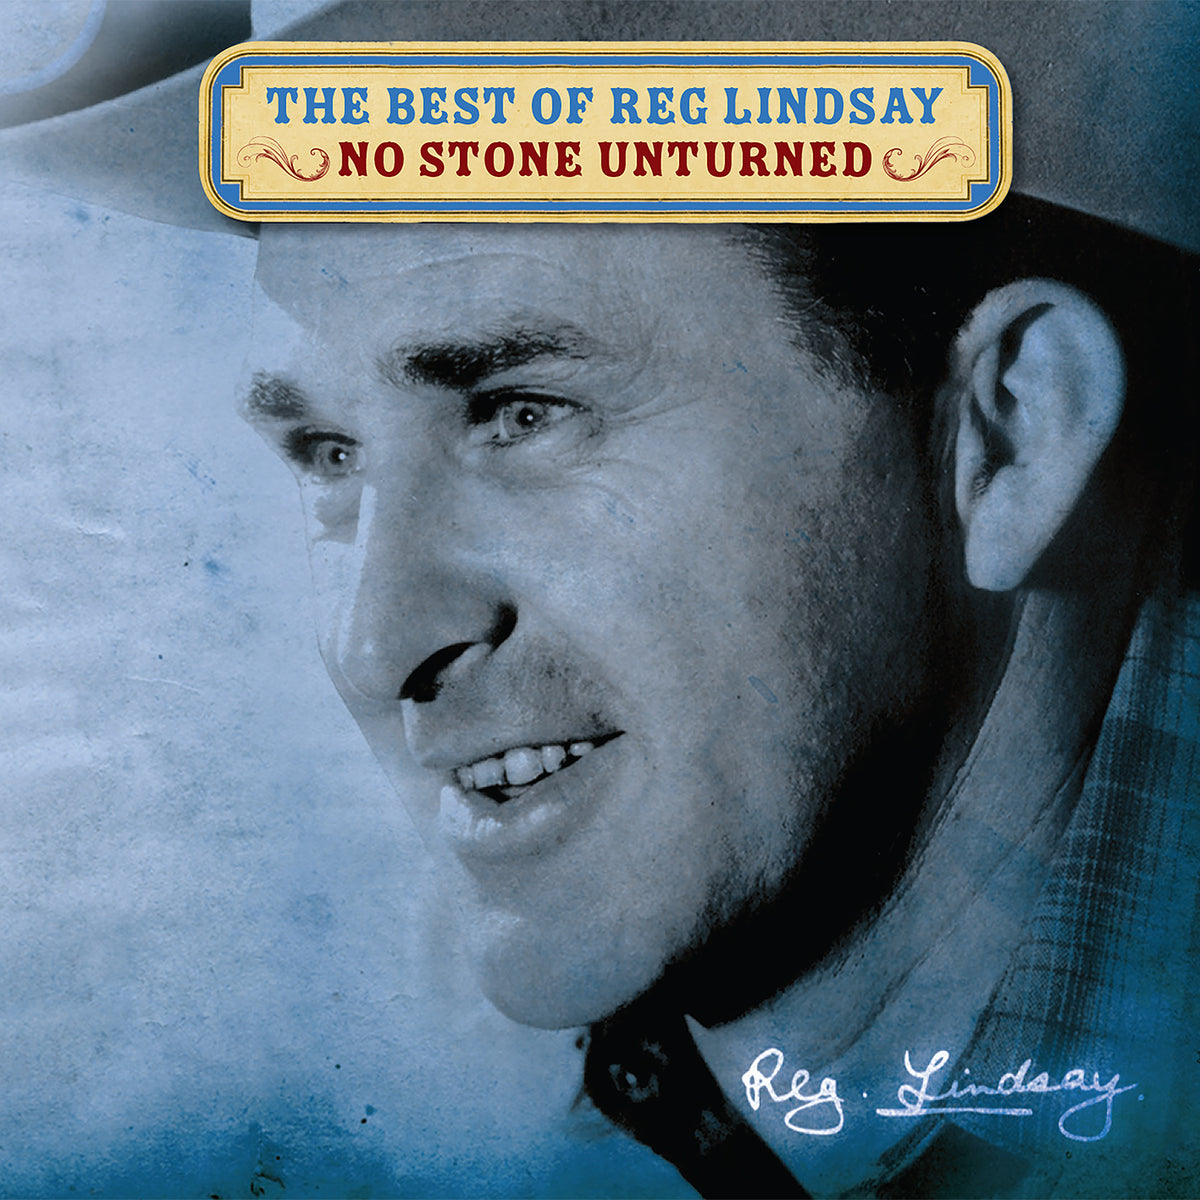 FANFARE338 - REG LINDSAY - THE BEST OF R